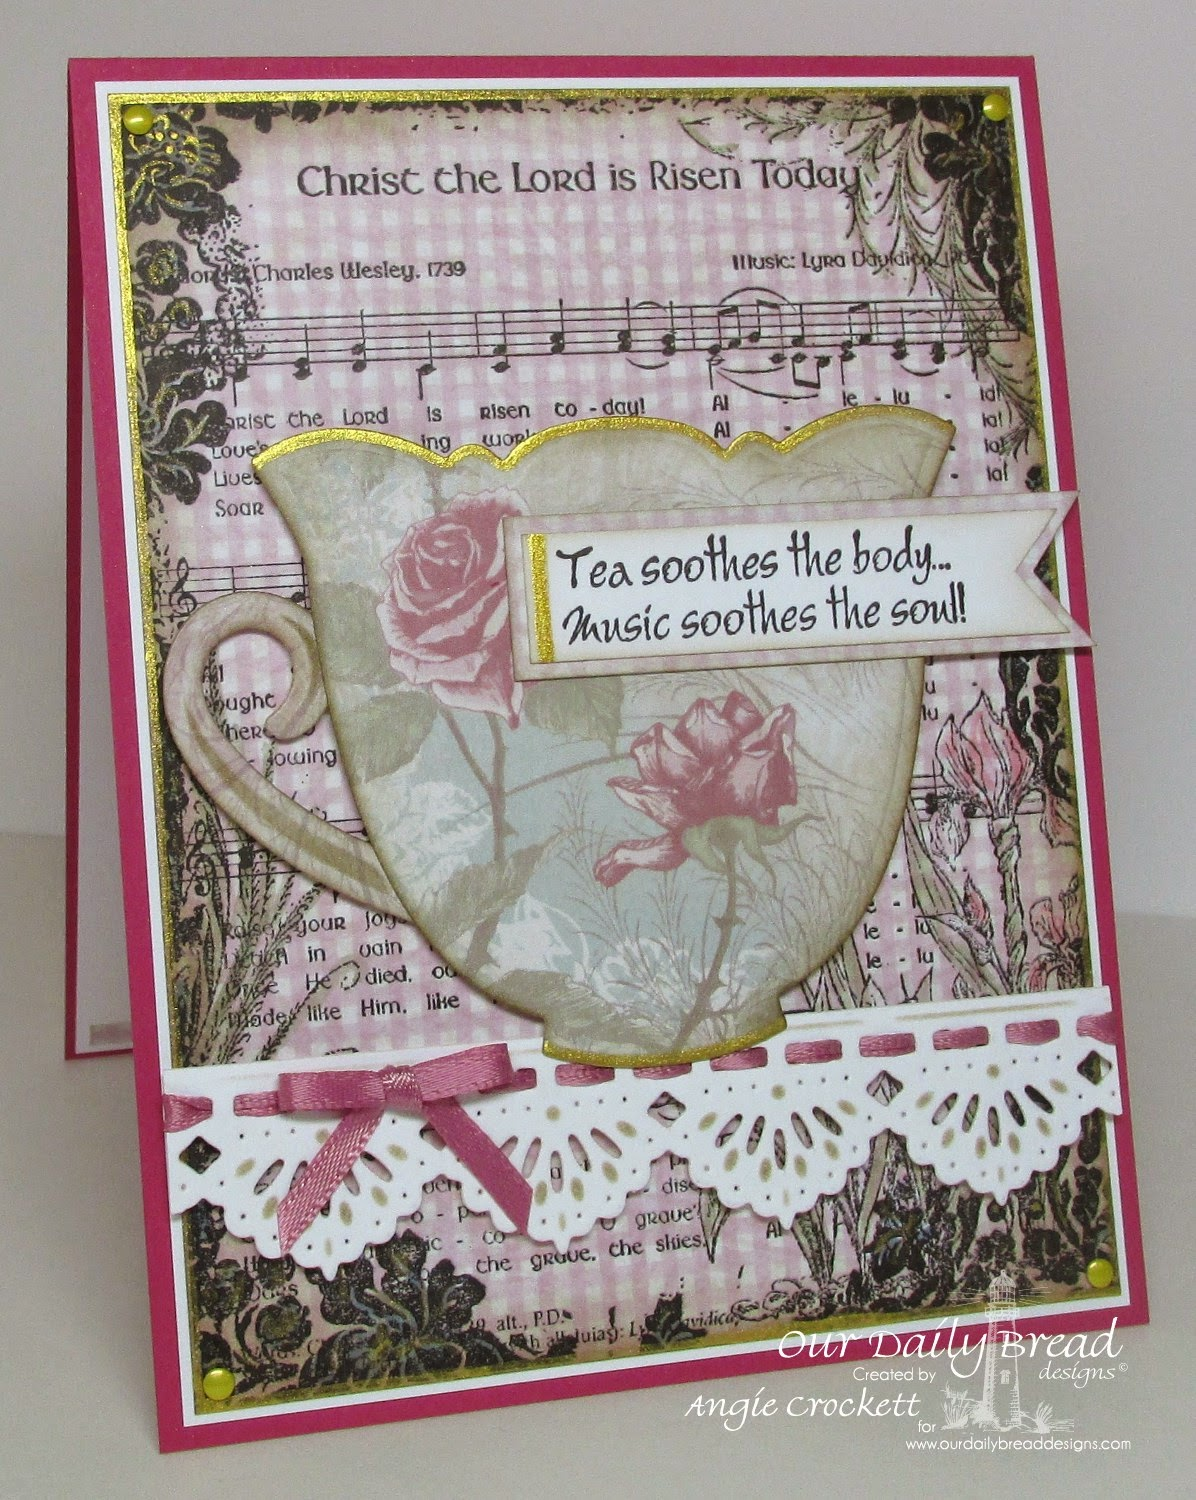 ODBD Shabby Rose Paper Collection, ODBD Custom Beautiful Border Dies, ODBD Christ the Lord Background, ODBD Just A Note, Card Designer Angie Crockett